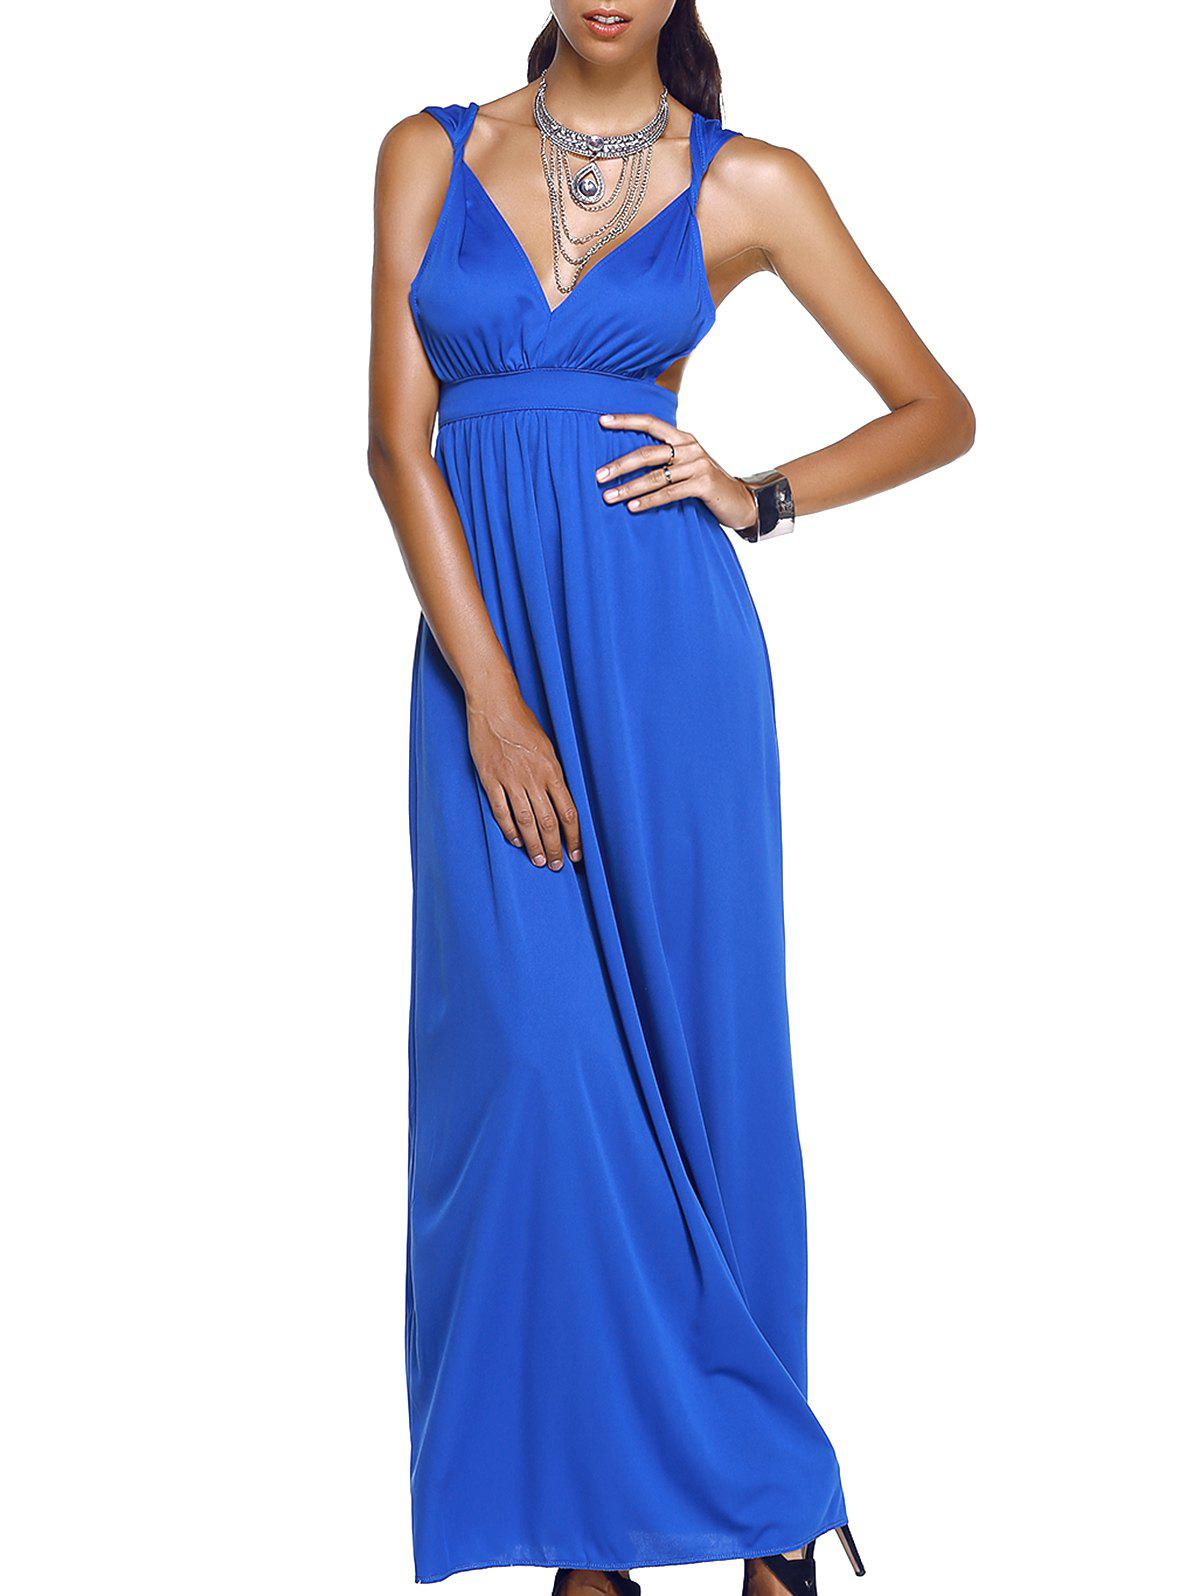 Trendy Sleeveless Plunging Neck Cut Out Solid Color Women's Dress